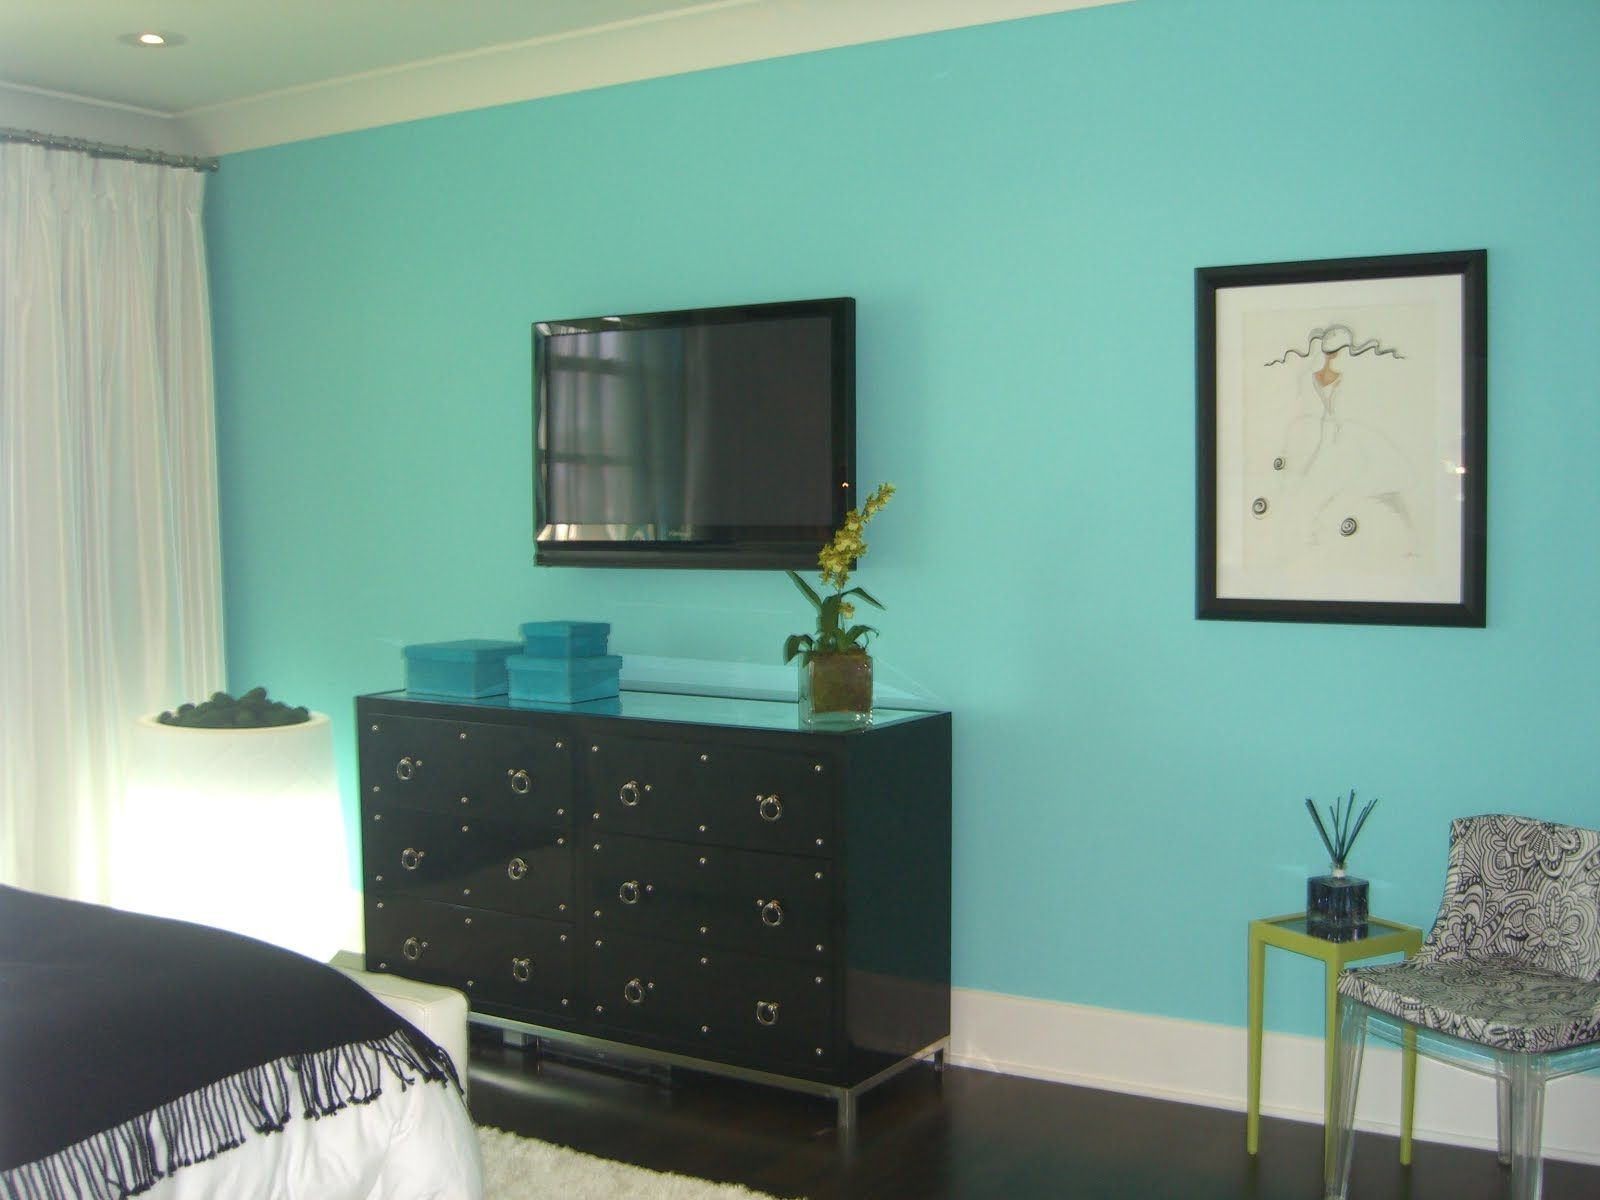 Turquoise Accent Wall Living Room Tsvwizwy Sky Designs Living Room Turquoise Living Room Wall Color Accent Walls In Living Room